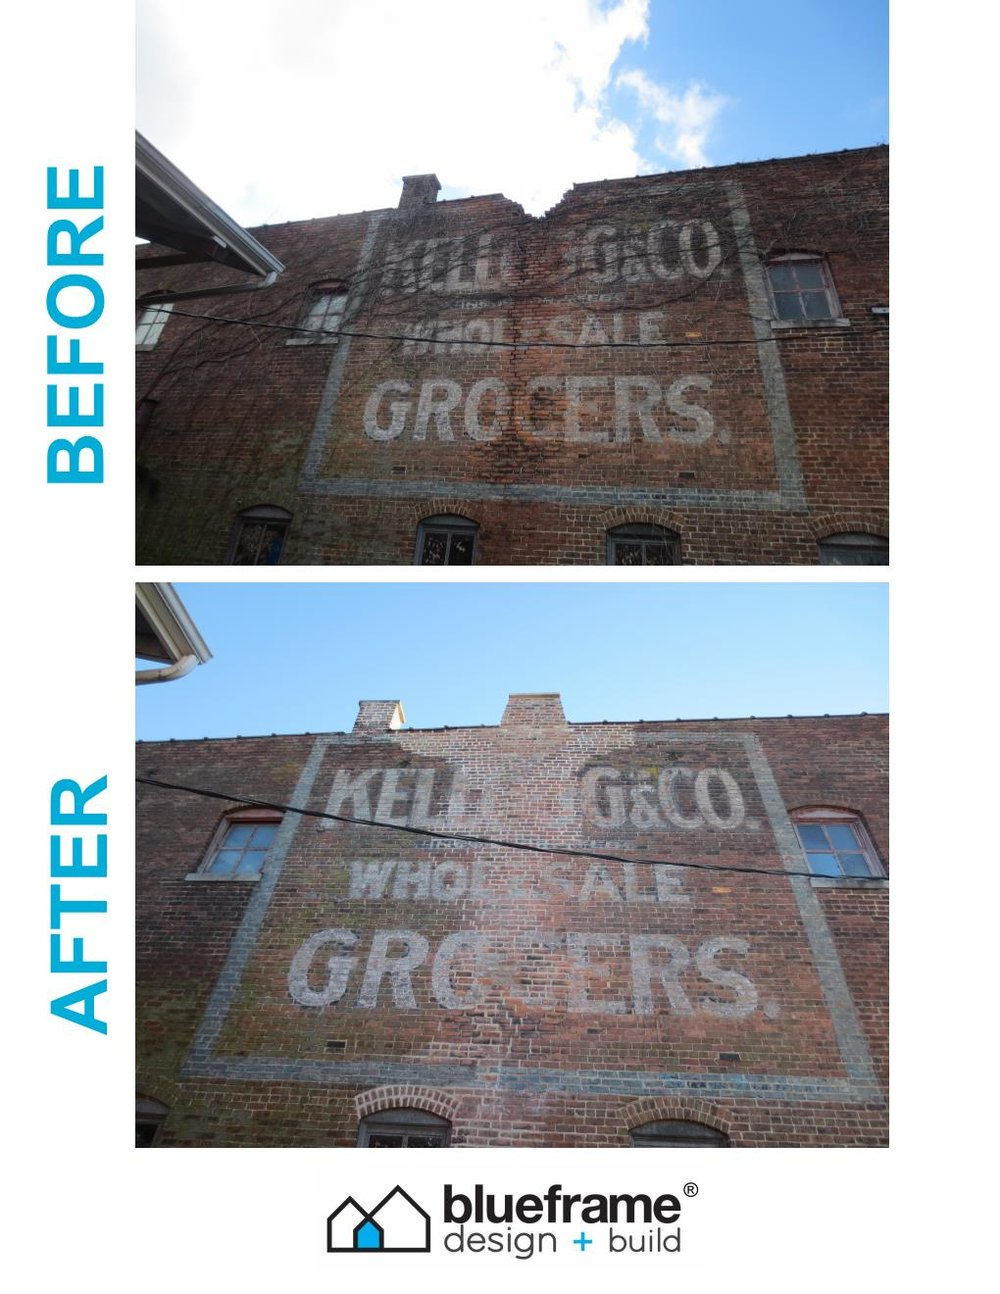 Progress on our Richmond property for buleframe design + build.  view of the ghost sign before and after repairs to the brick and chimney.  we are taking small steps to big changes.